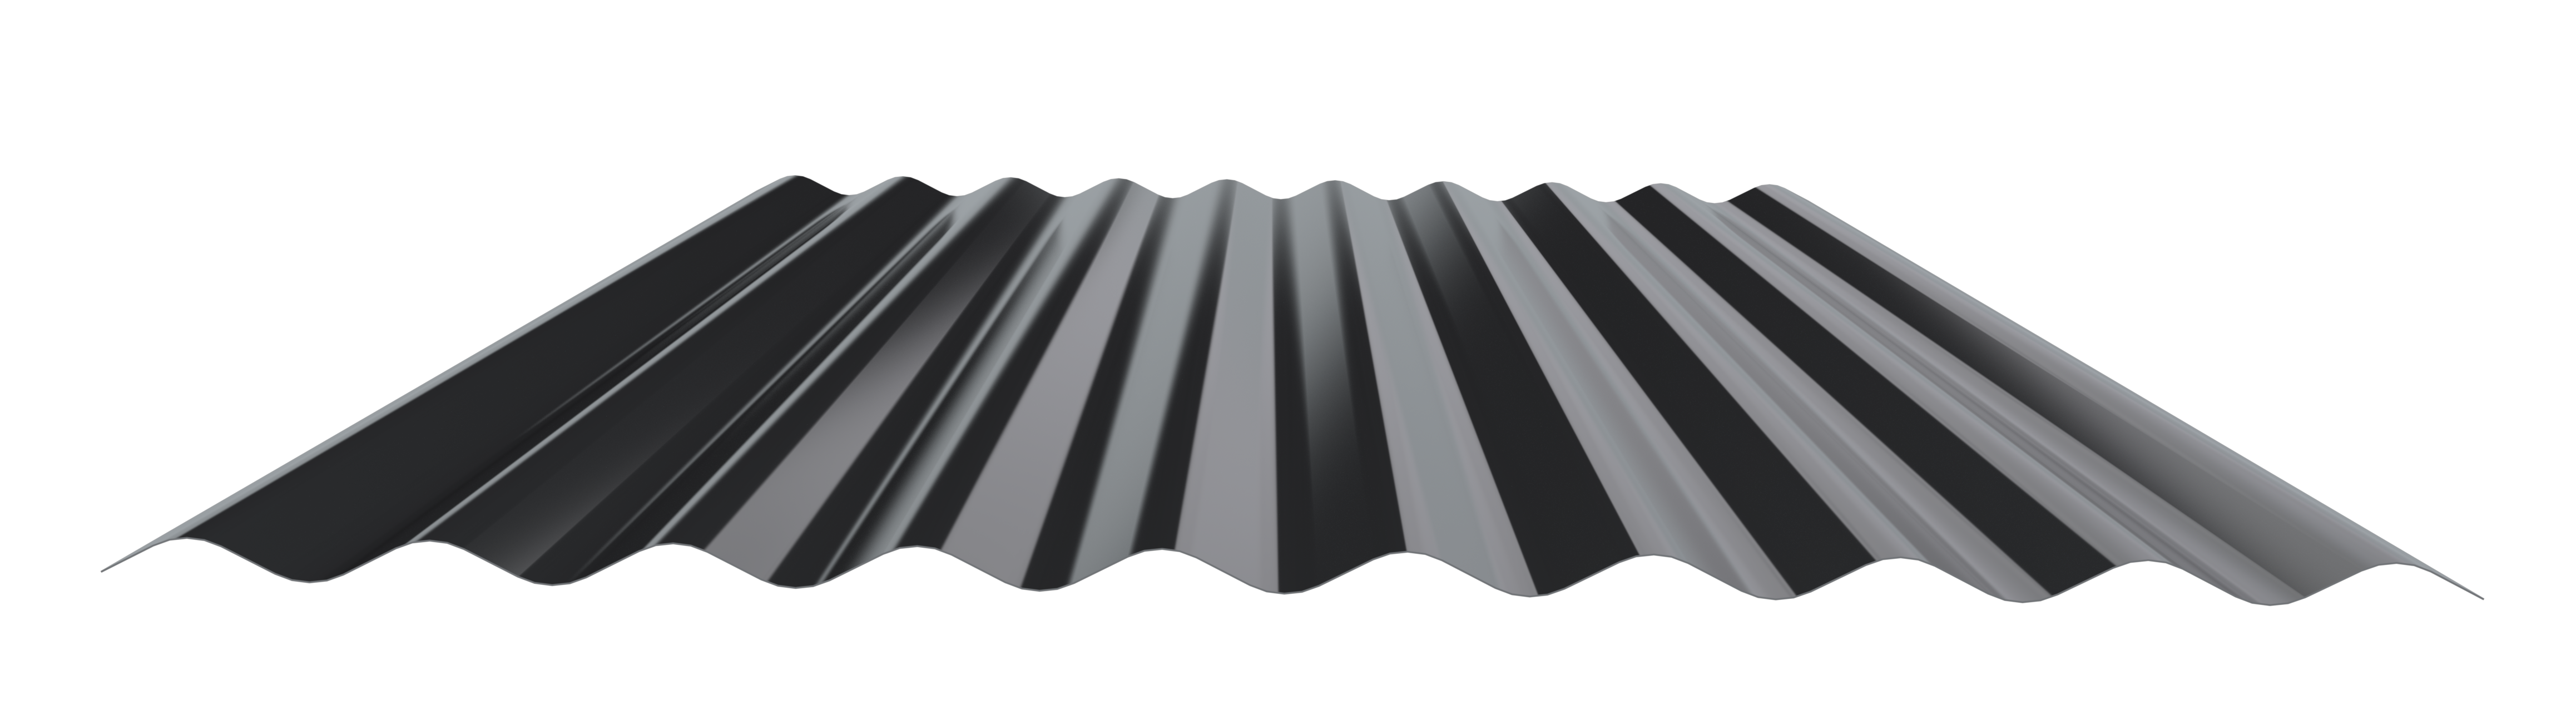 1 2 Corrugated Corrugated Metal Roofing Siding Amp Wall